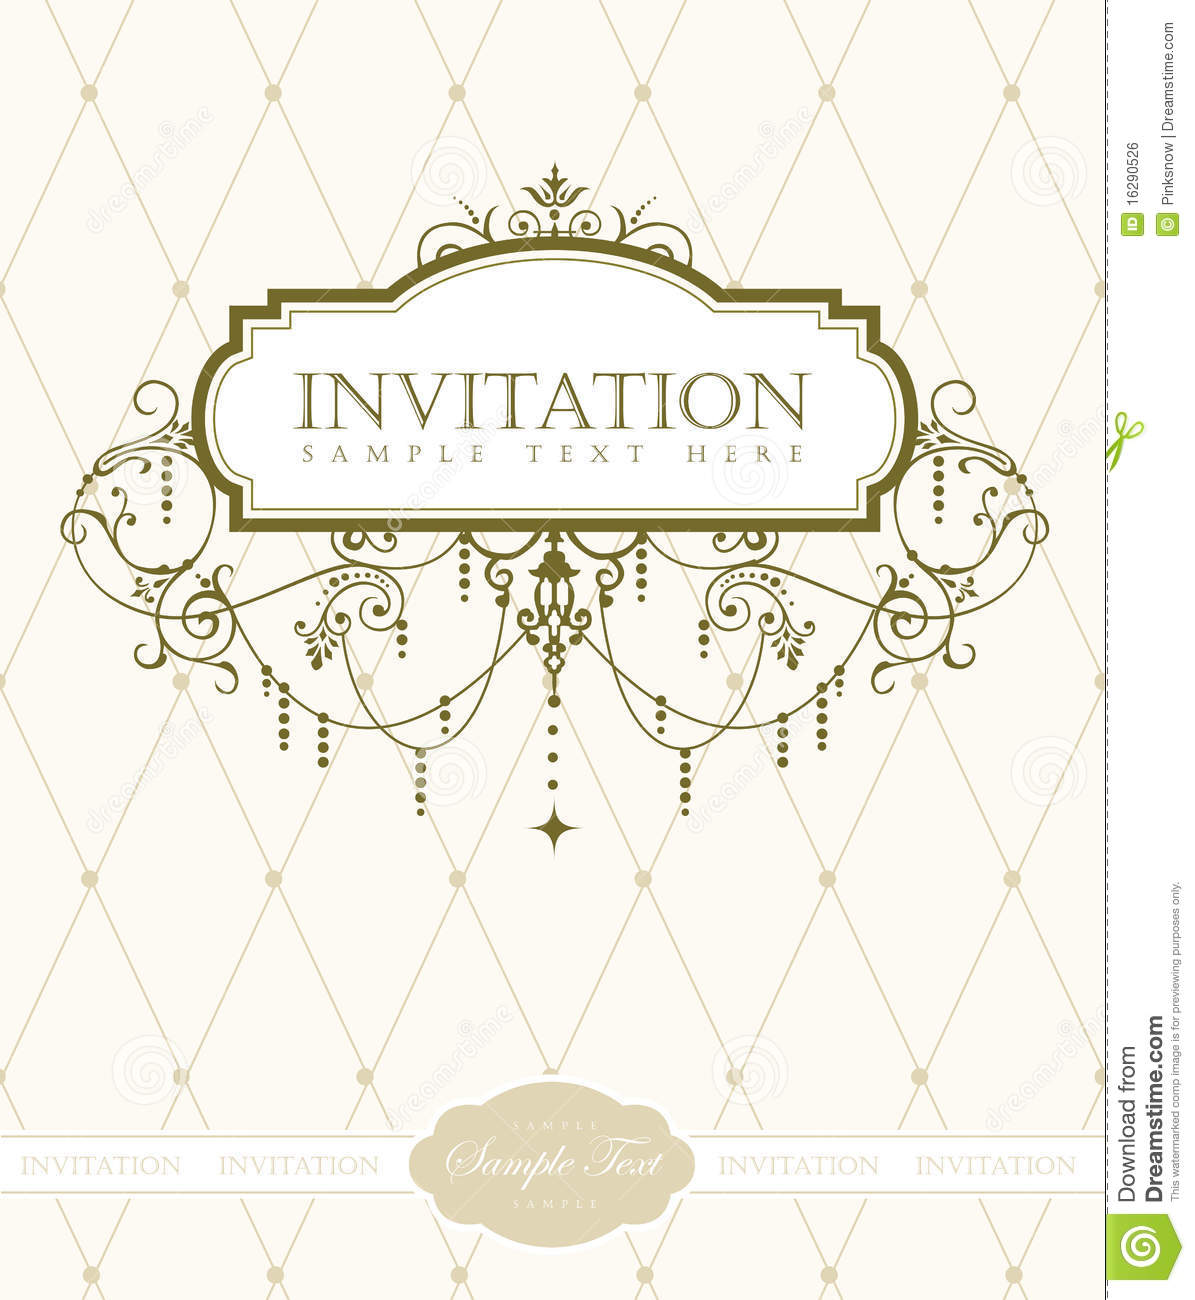 Invitation Card Template Royalty Free Image Image 16290526 – Free Invitation Design Templates